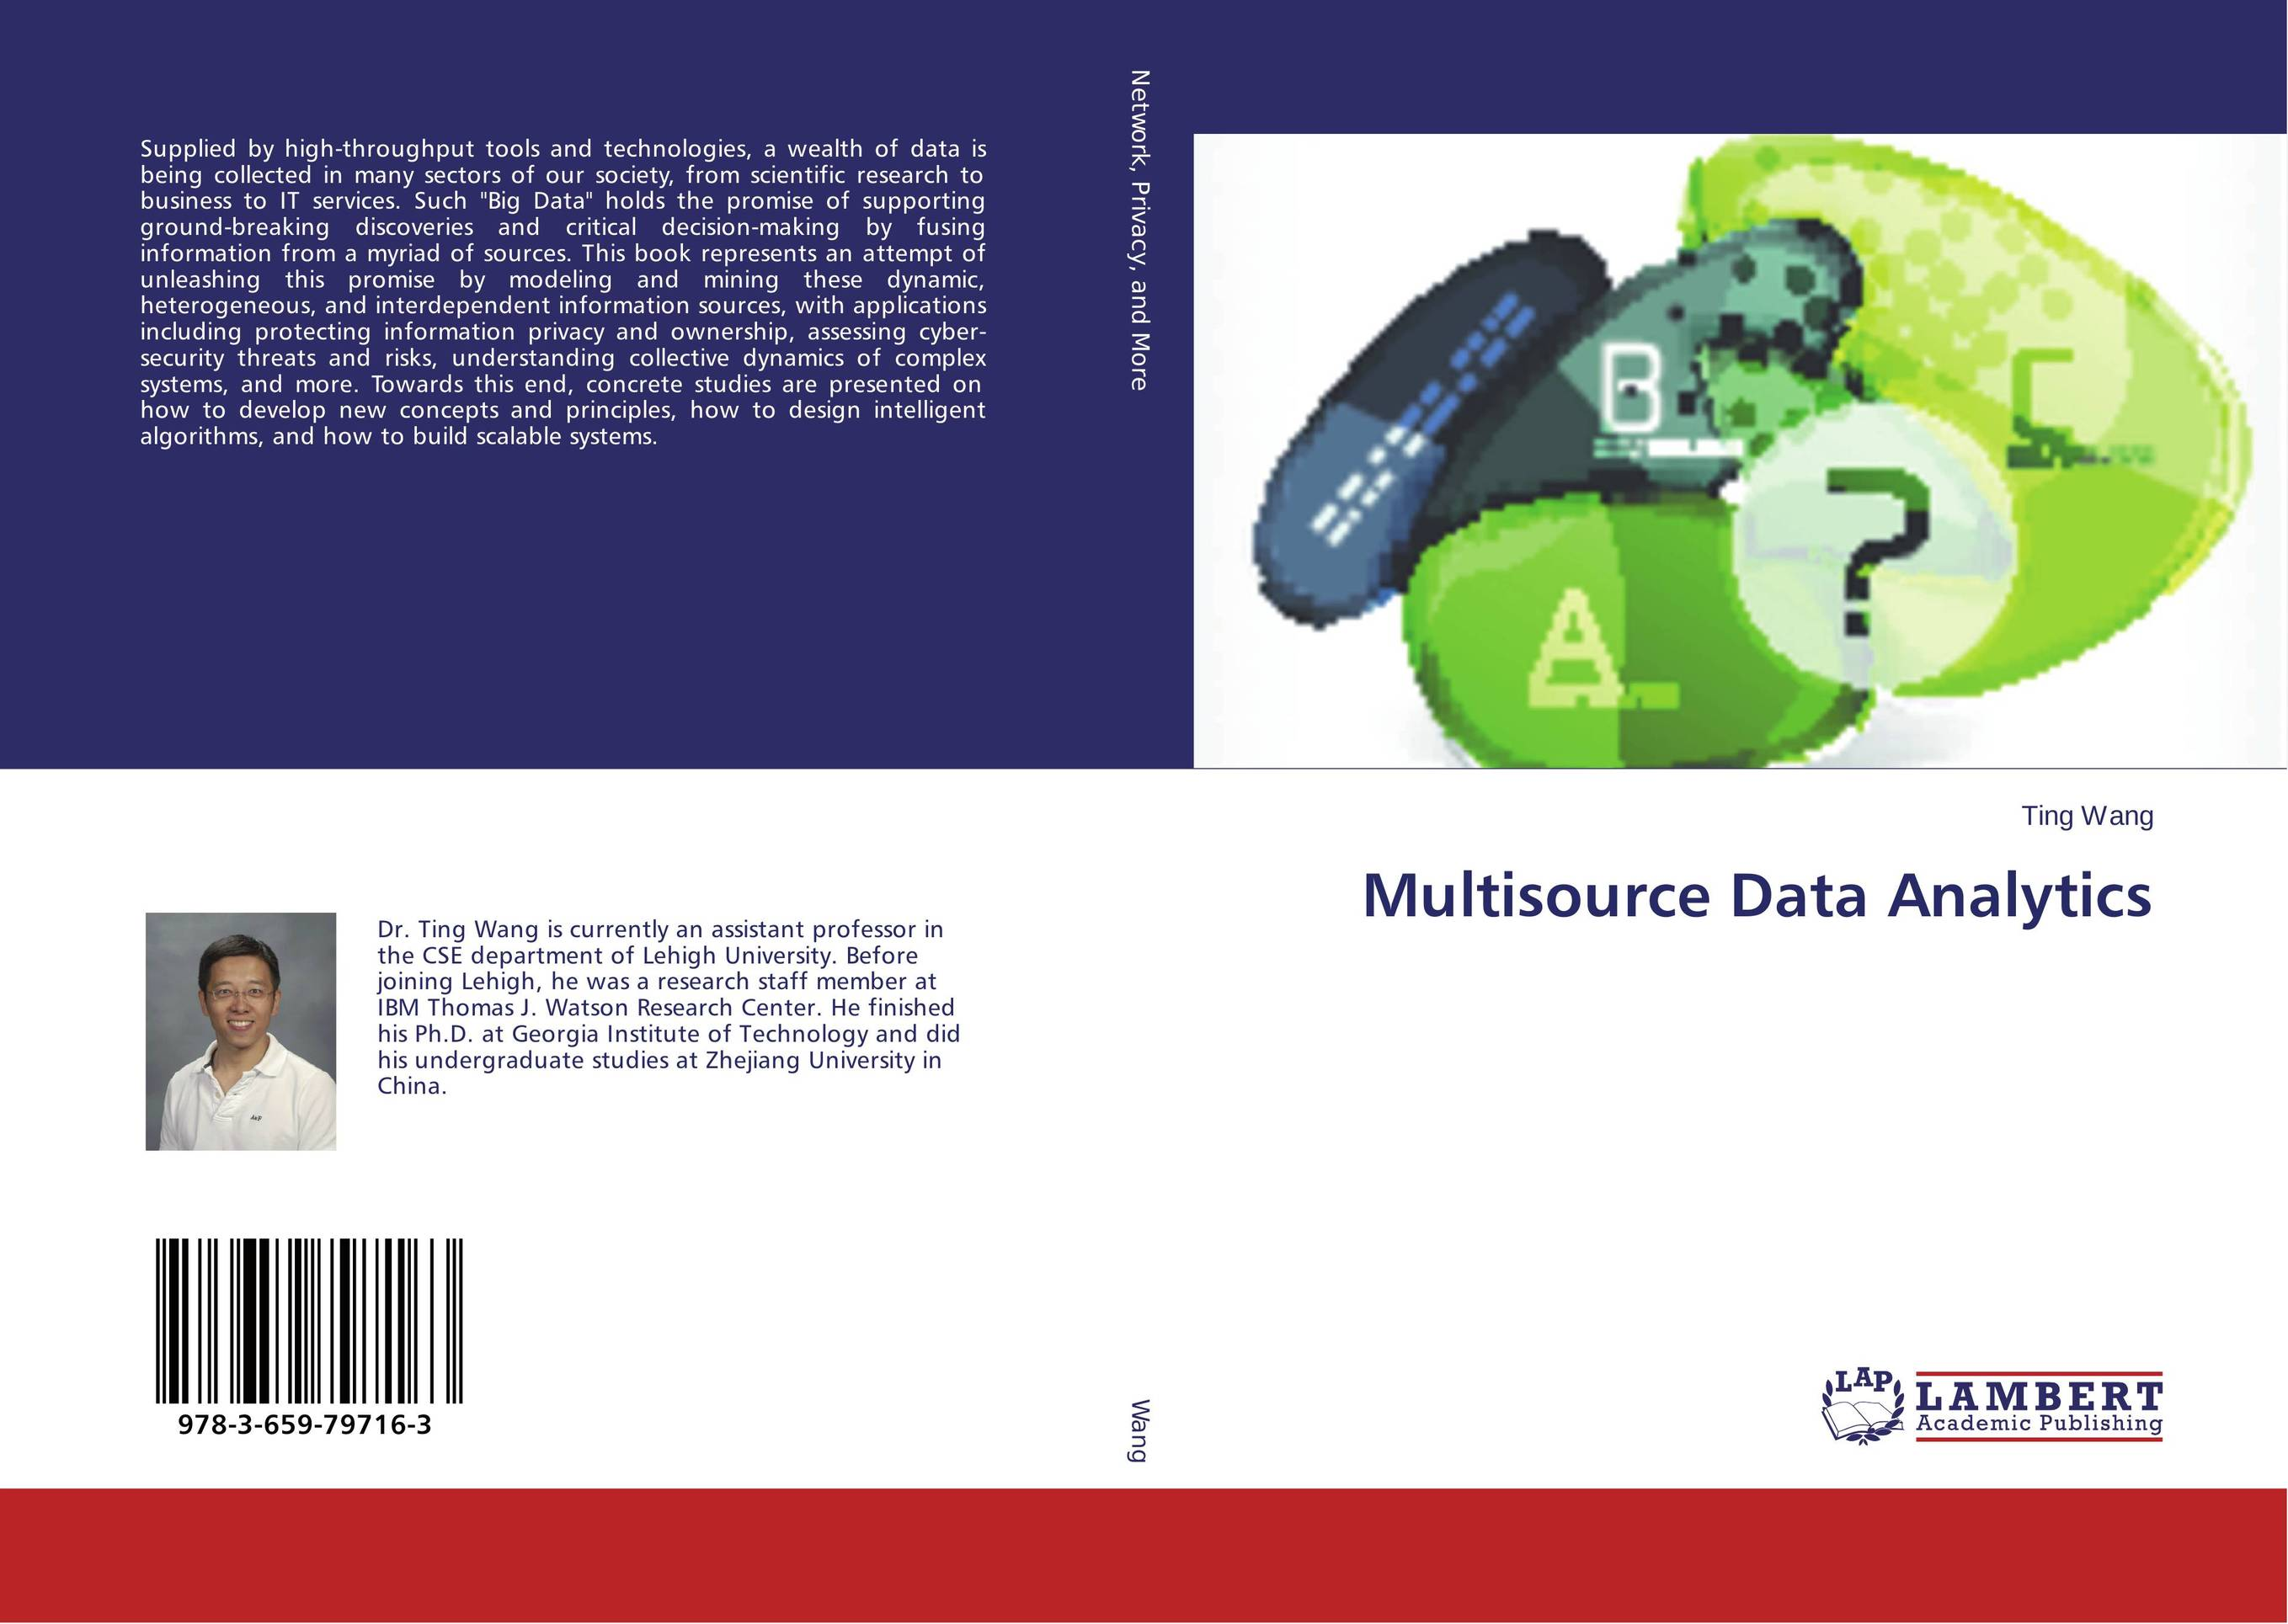 Multisource Data Analytics fusion and revision of uncertain information from multiple sources